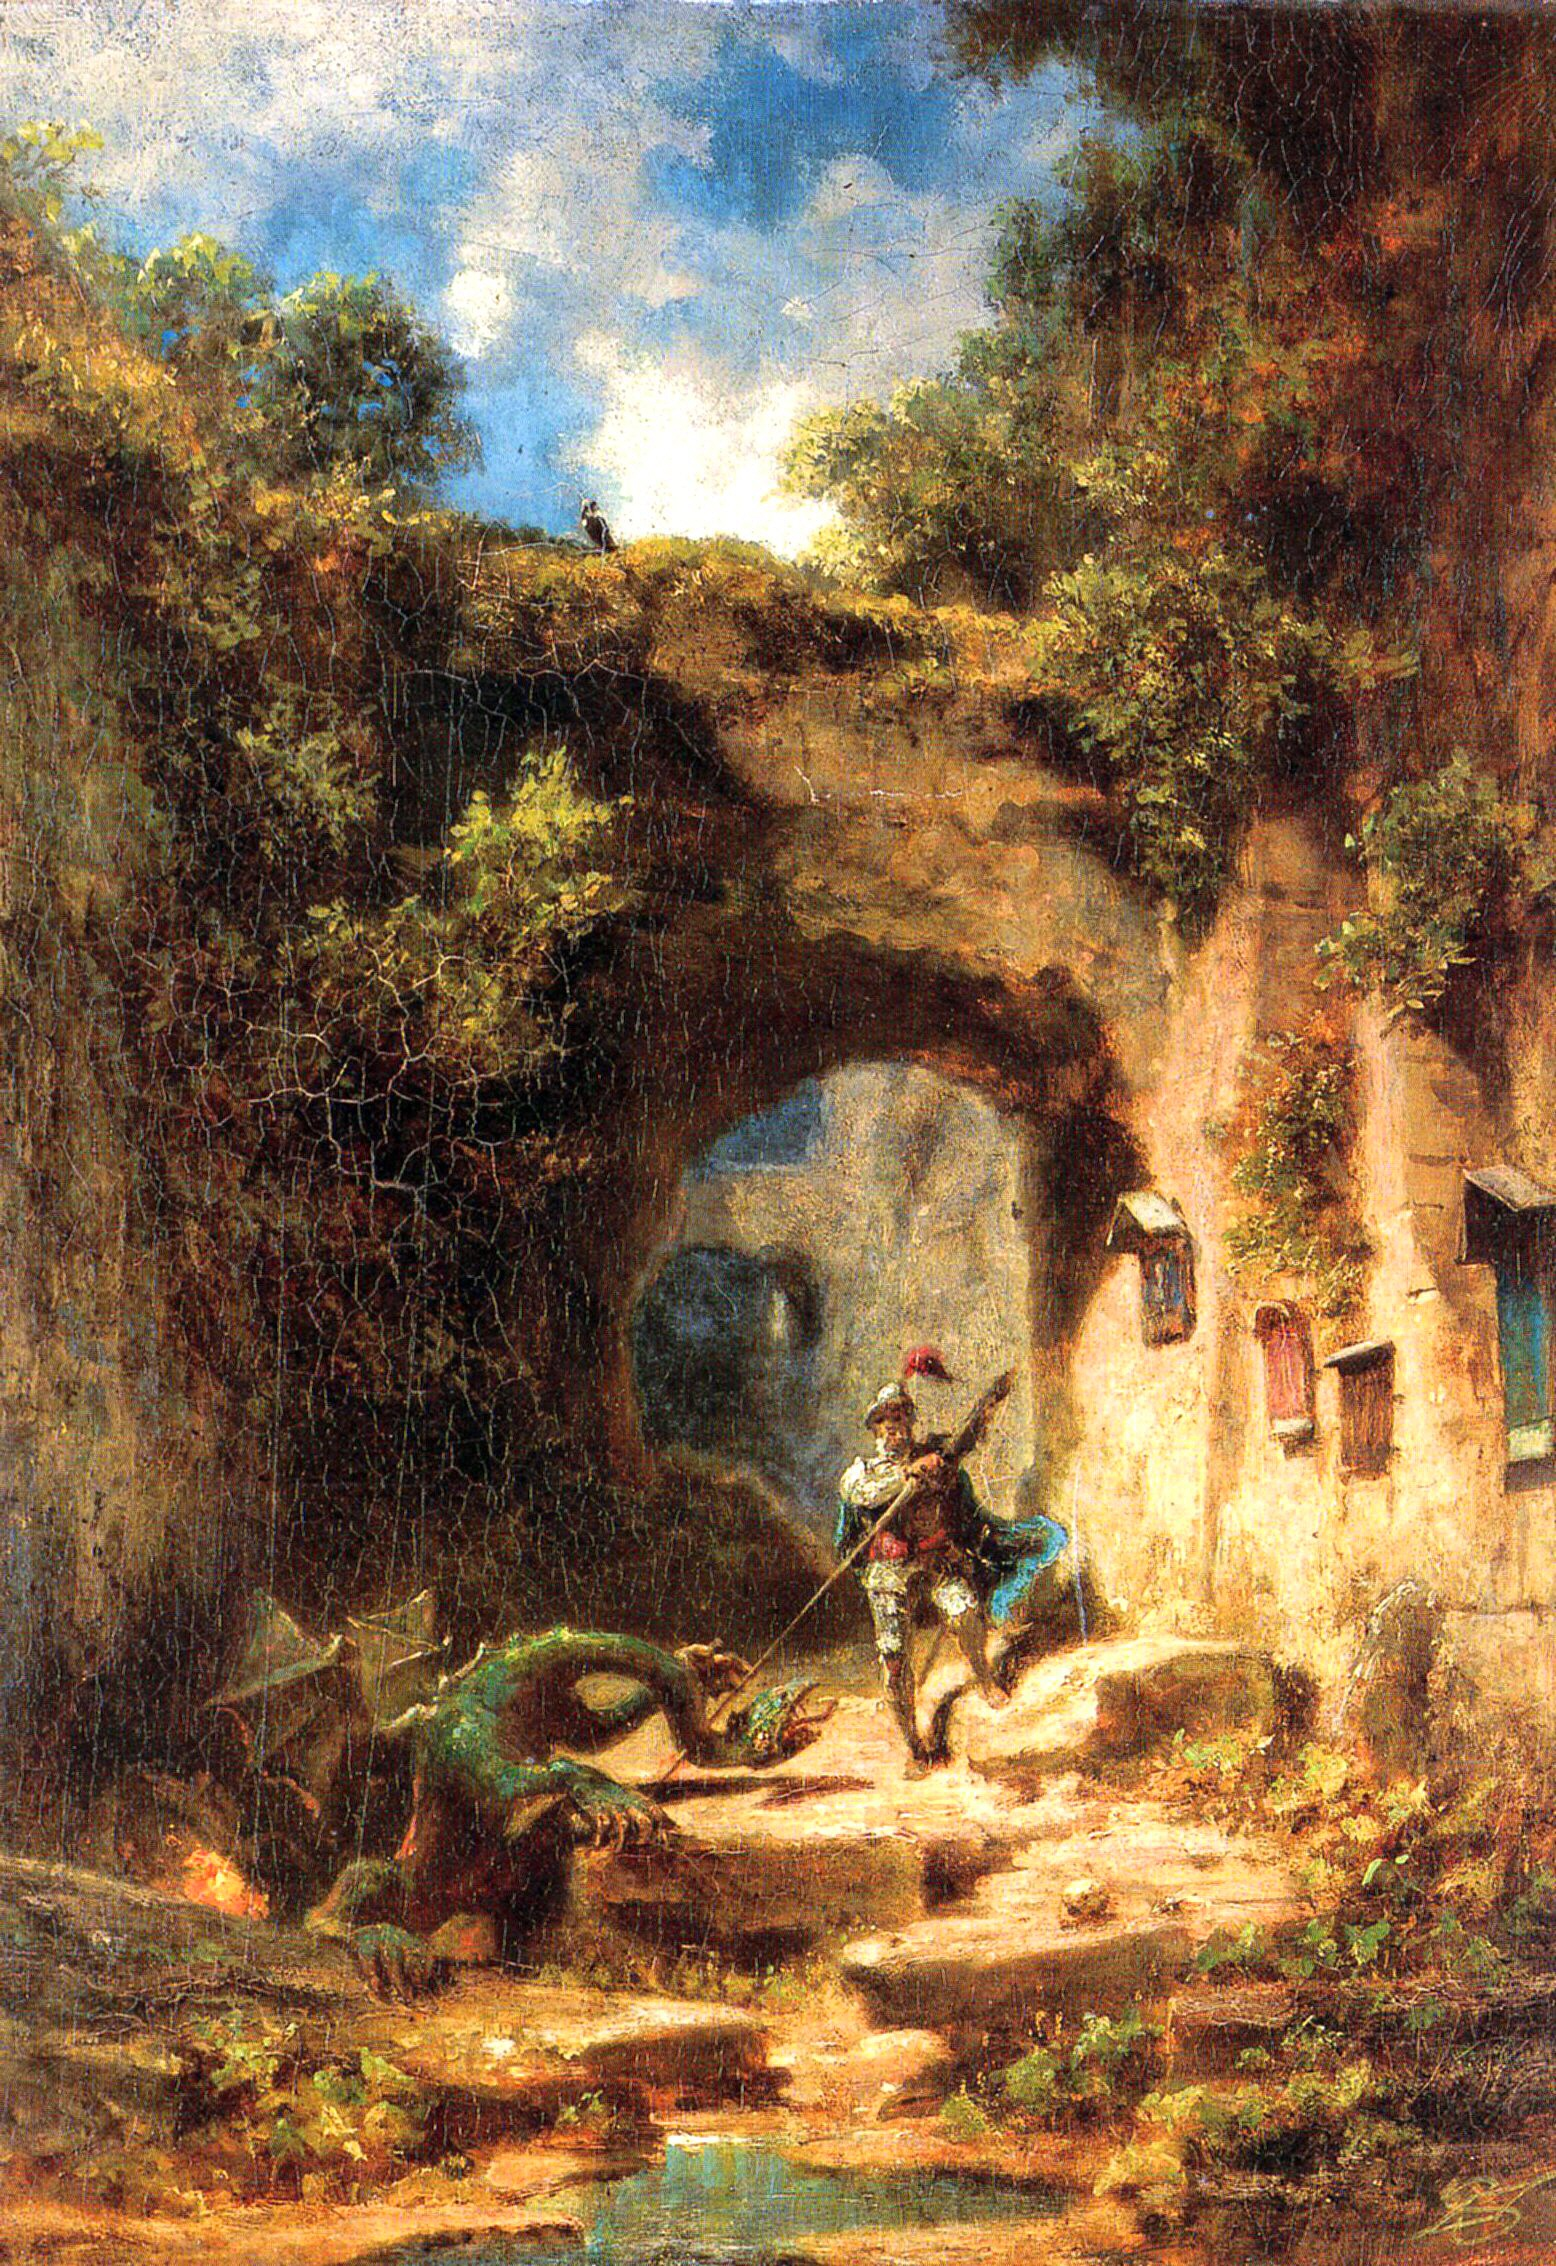 Carl Muenchen Spitzweg -  Knight and dragon